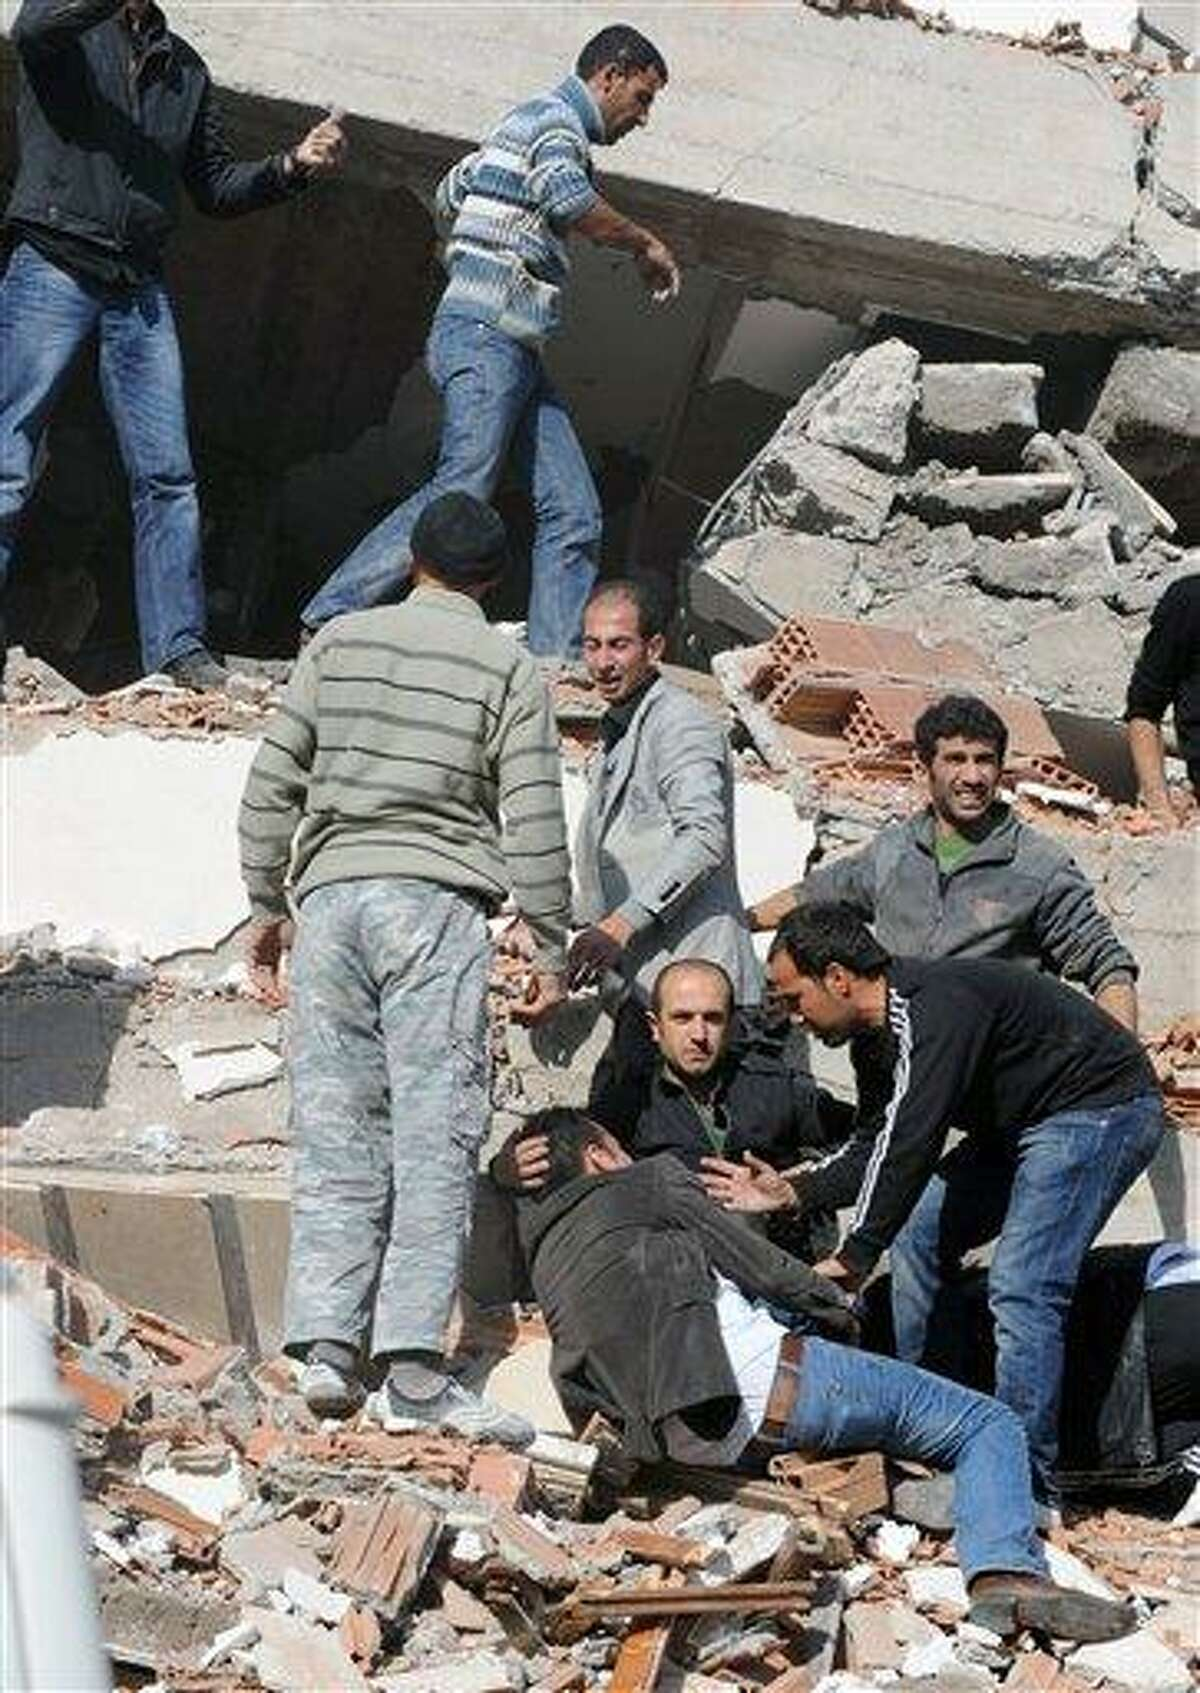 People try to save people trapped under debris in Tabanli village near the city of Van after a powerful earthquake struck eastern Turkey Sunday Oct. 23, 2011, collapsing some buildings and causing a number of deaths, an official said. ( AP Photo/ Abdurrahman Antakyali, Aatolia)